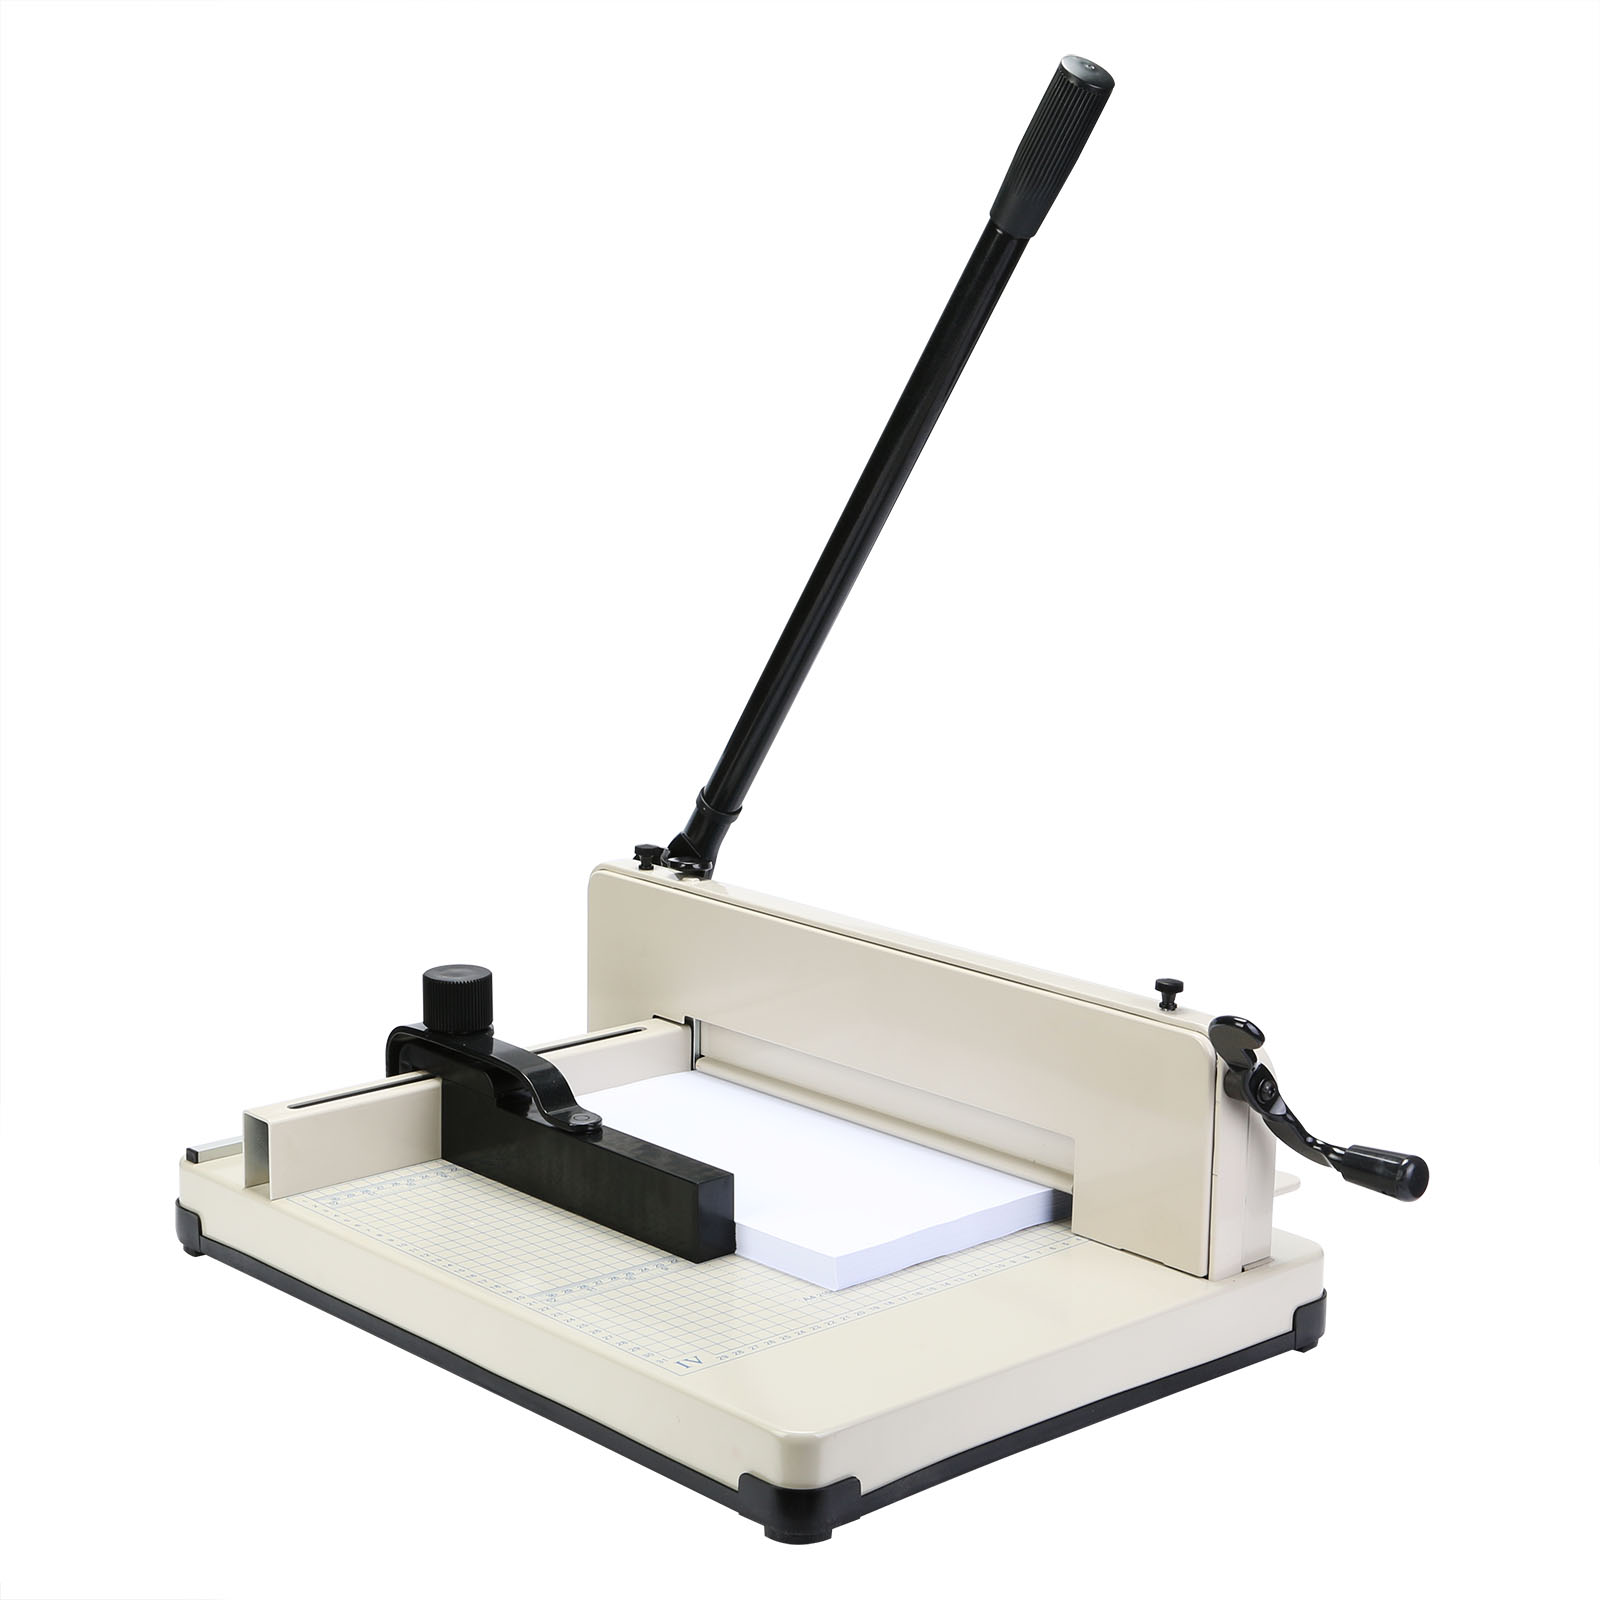 Heavy Duty Paper Cutter Guillotine - Up to A3 Size Paper